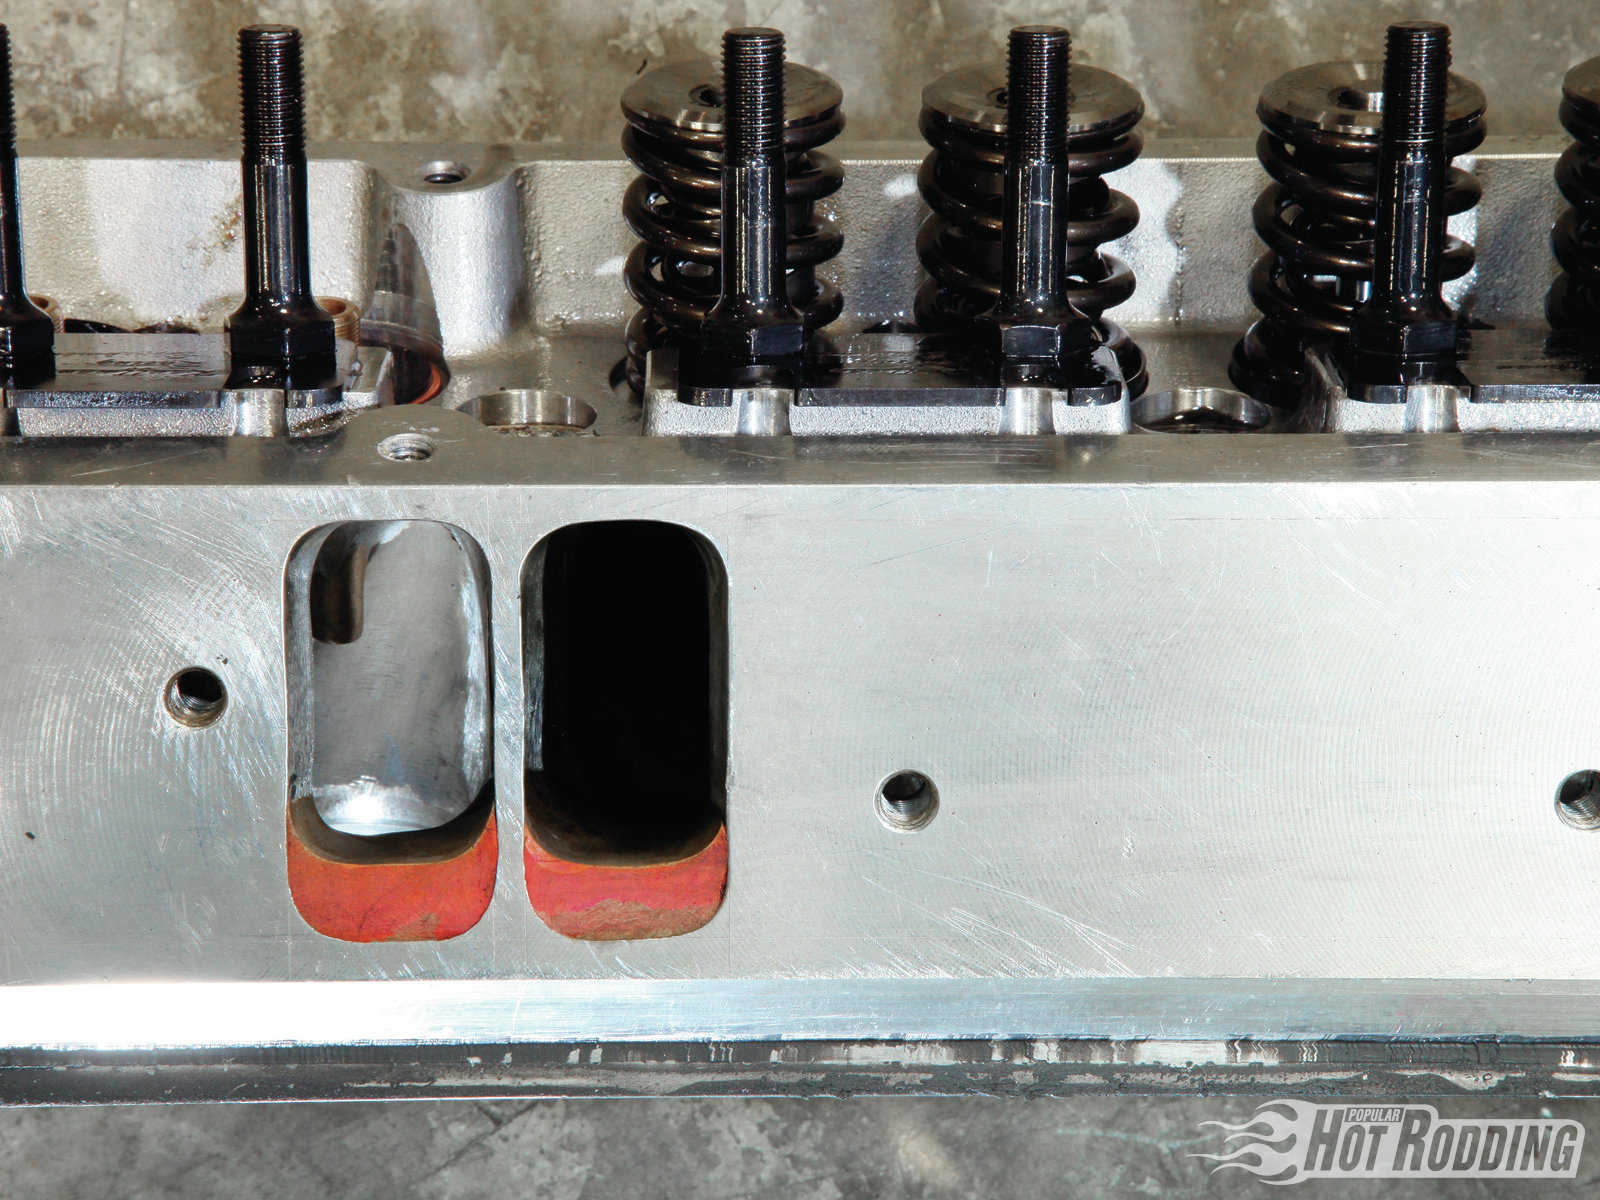 The extensively reworked cylinder heads feature significant filling on the intake port floor, looking to achieve the maximum flow from the smallest cross-section. The efficient port form delivers an impressive peak flow of 400 cfm.